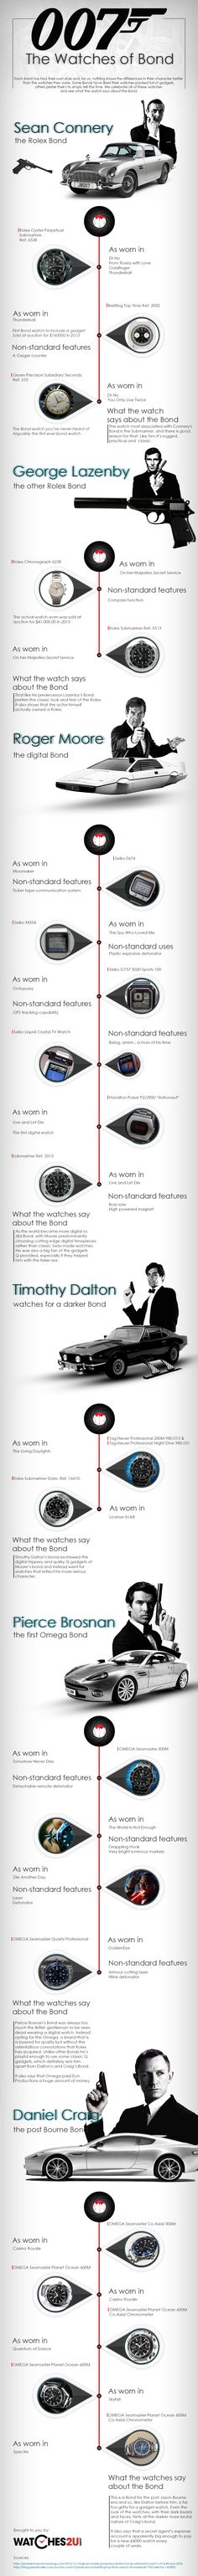 Bond 007 Watches